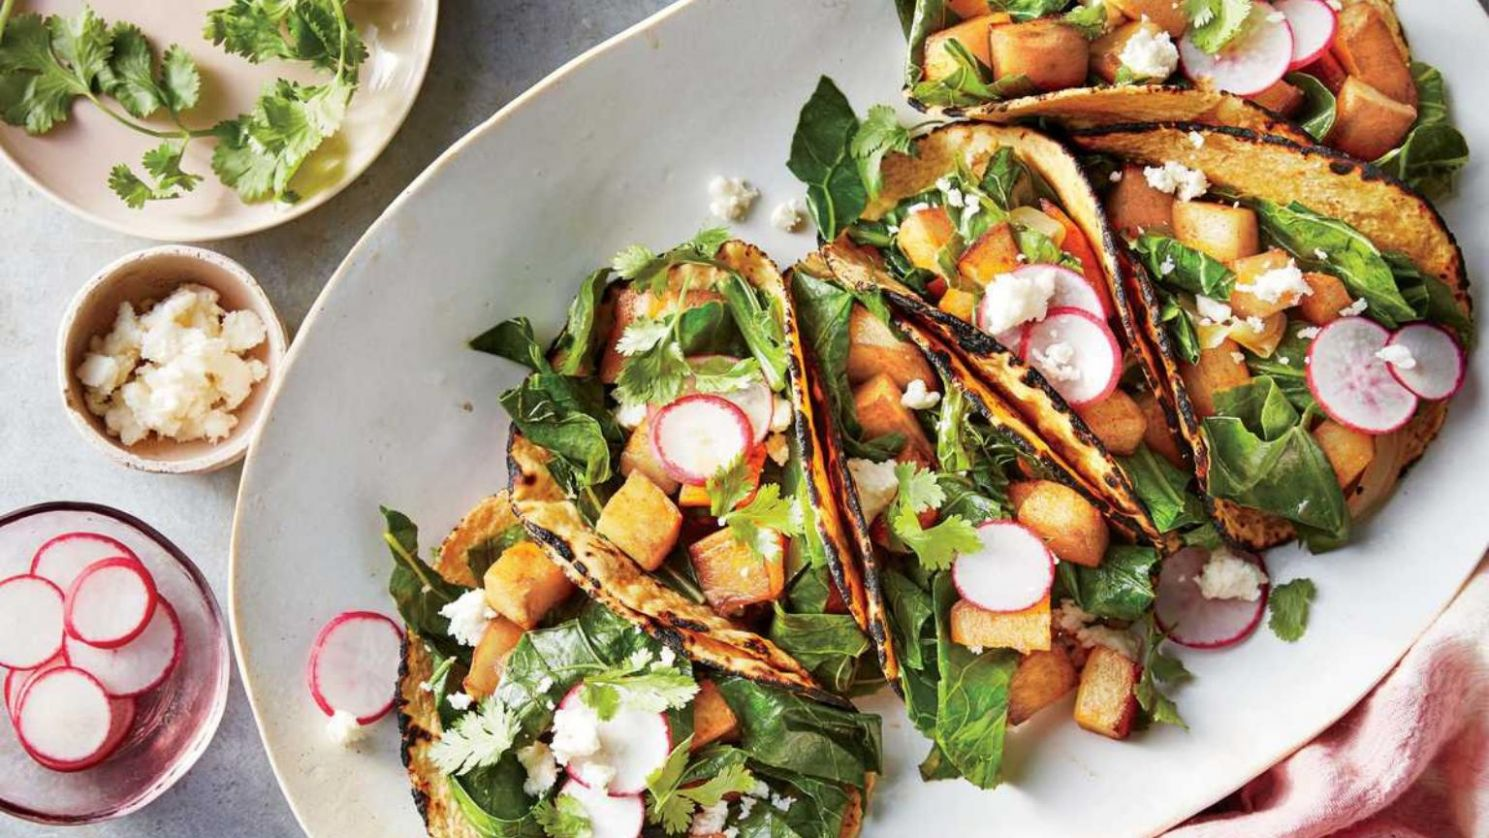 9 Easy Vegetarian Recipes for Busy Weeknights - Cooking Recipes Vegetarian